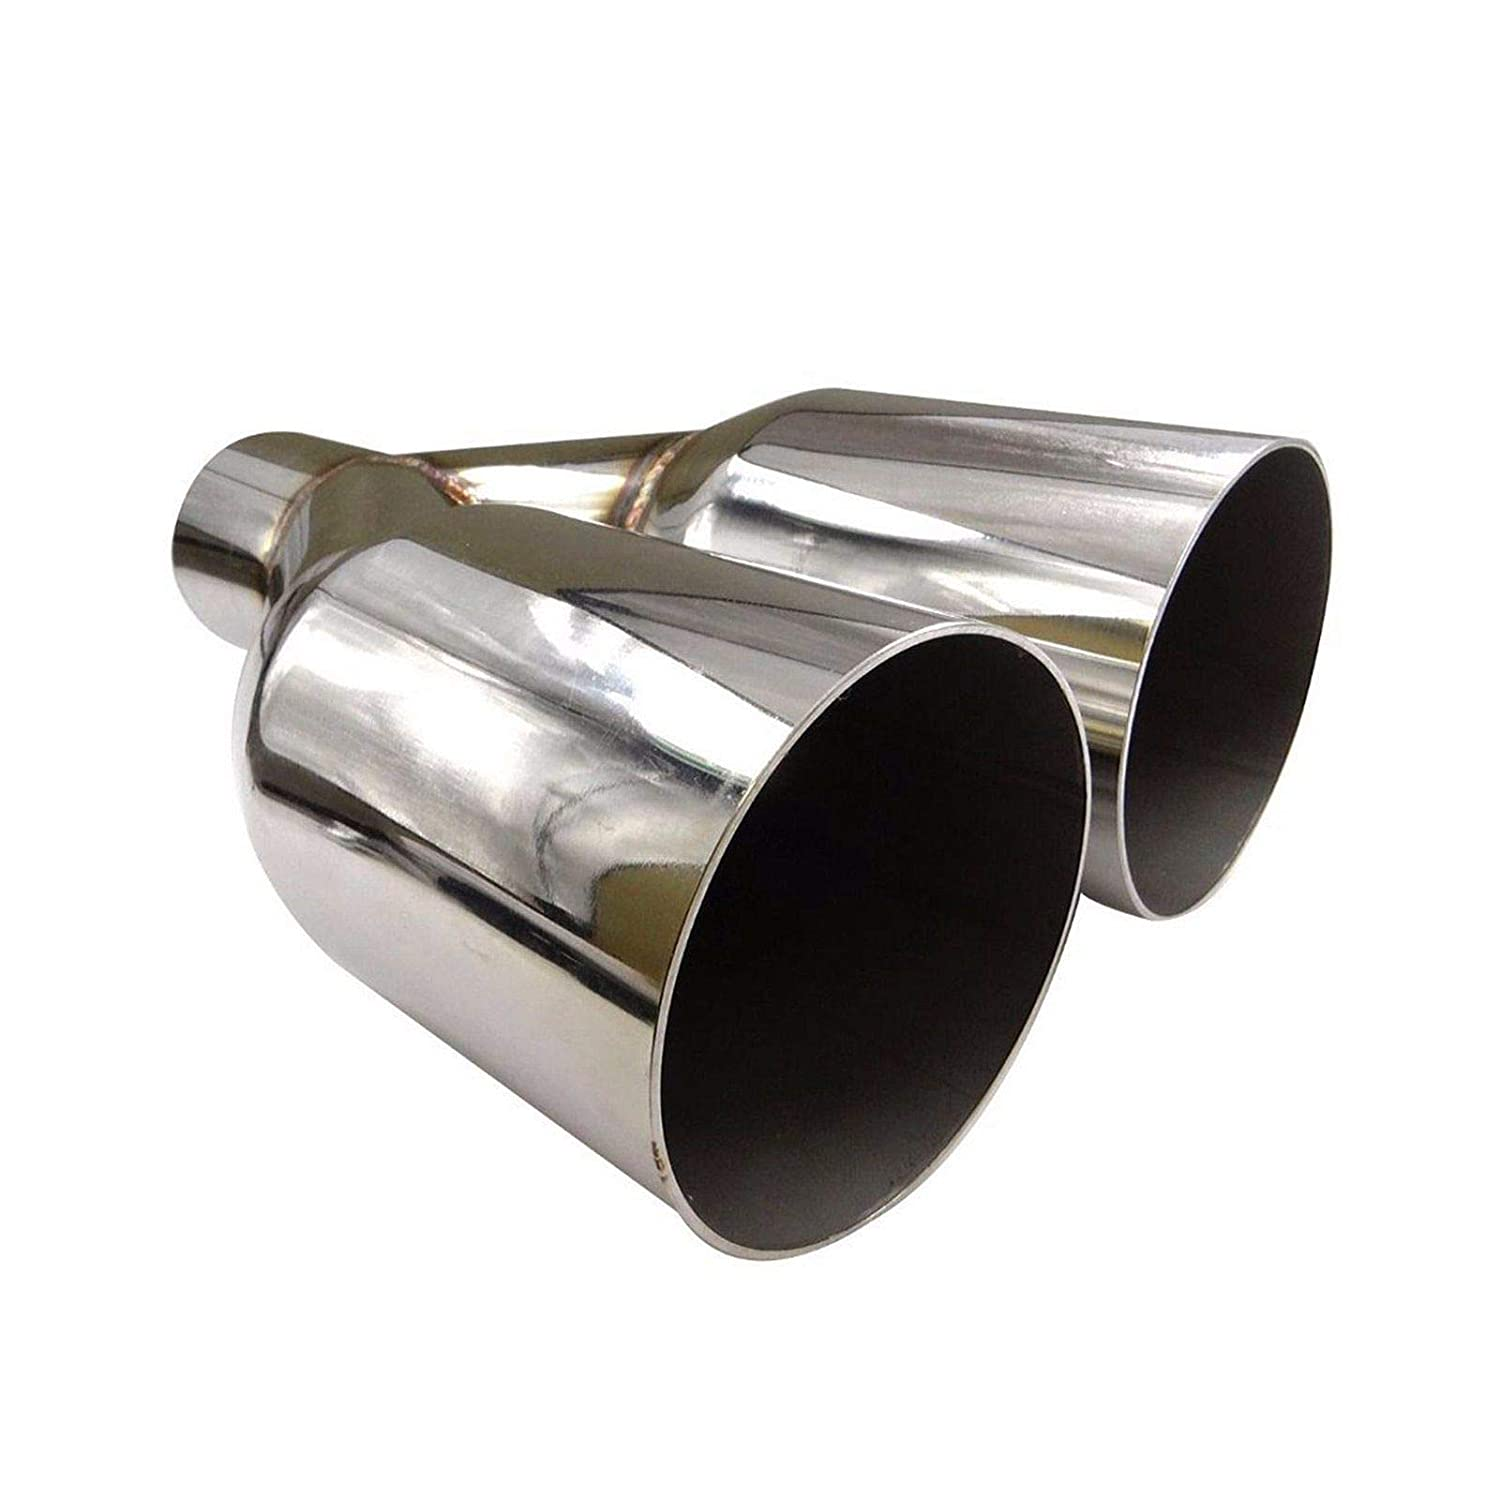 BLACKHORSE-RACING Universal Dual Exhaust Tip Straight Cut 2.5 Inlet 3.5 Inch Outlet 10.5 Length Polished Stainless Steel Silver Single Layer Staggered Tailpipe